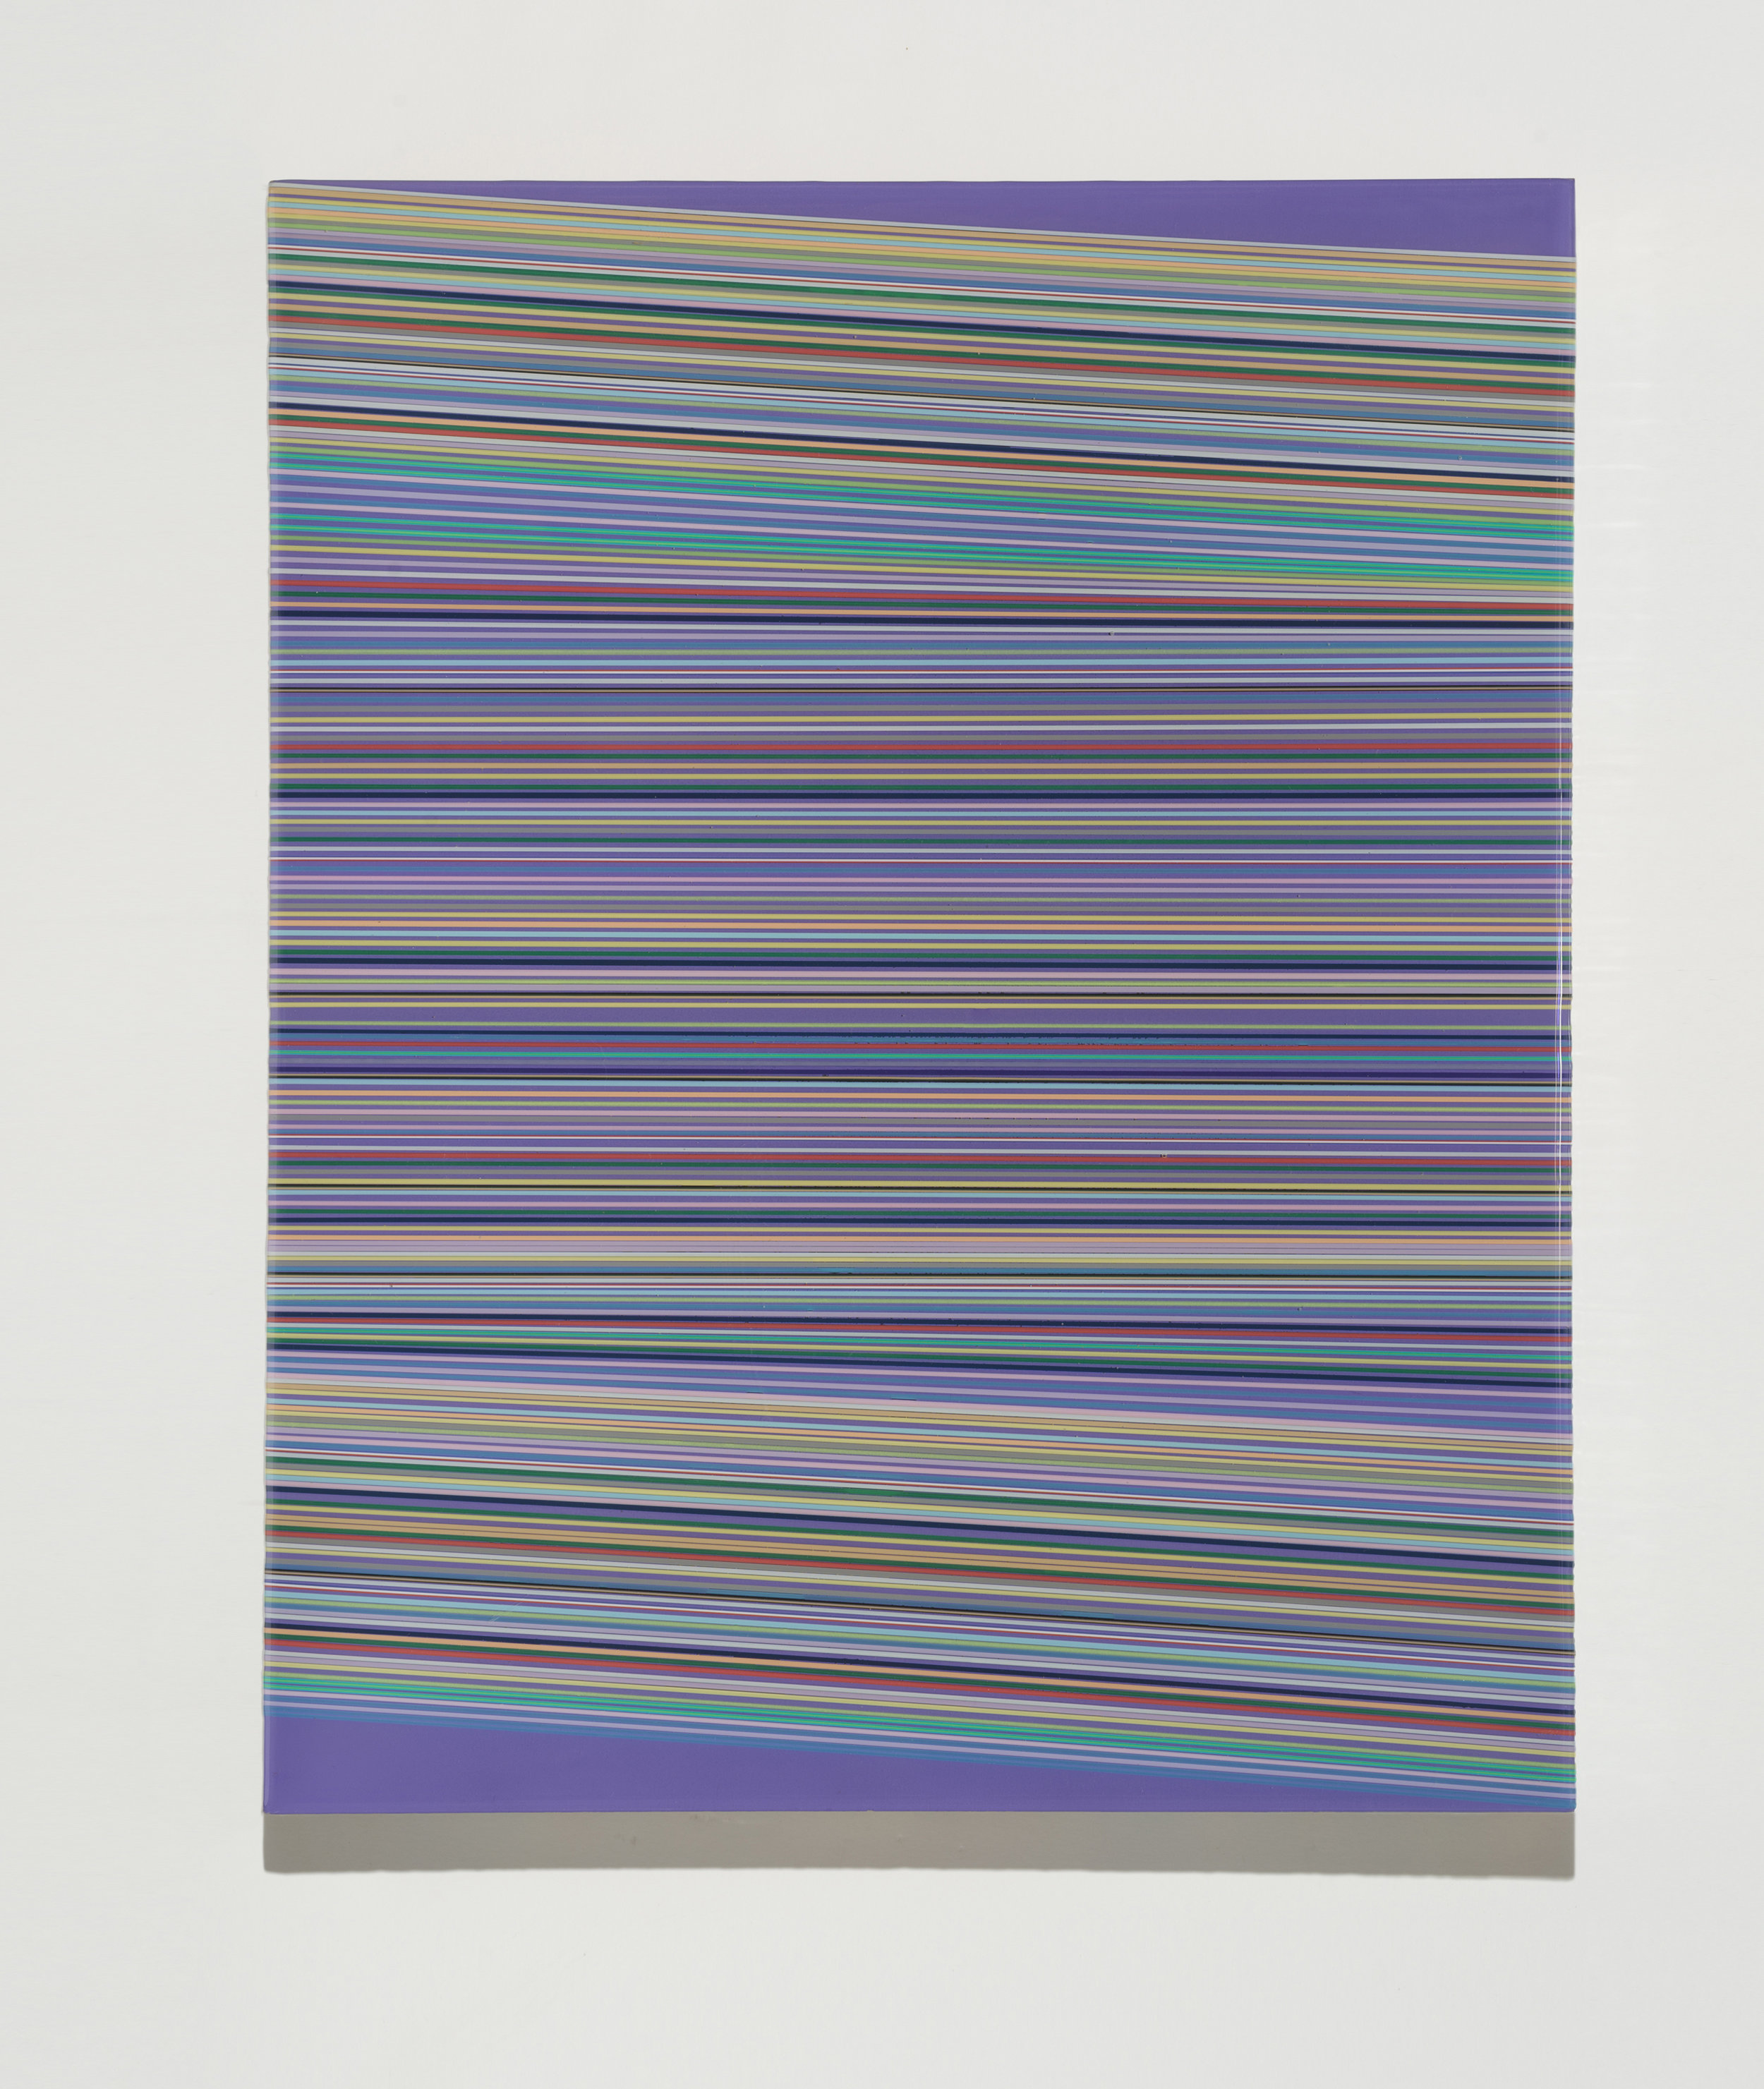 Daniel Bruttig, Purp, 2016. Lanyards, enamels and resin on panel, 20 x 16 in.